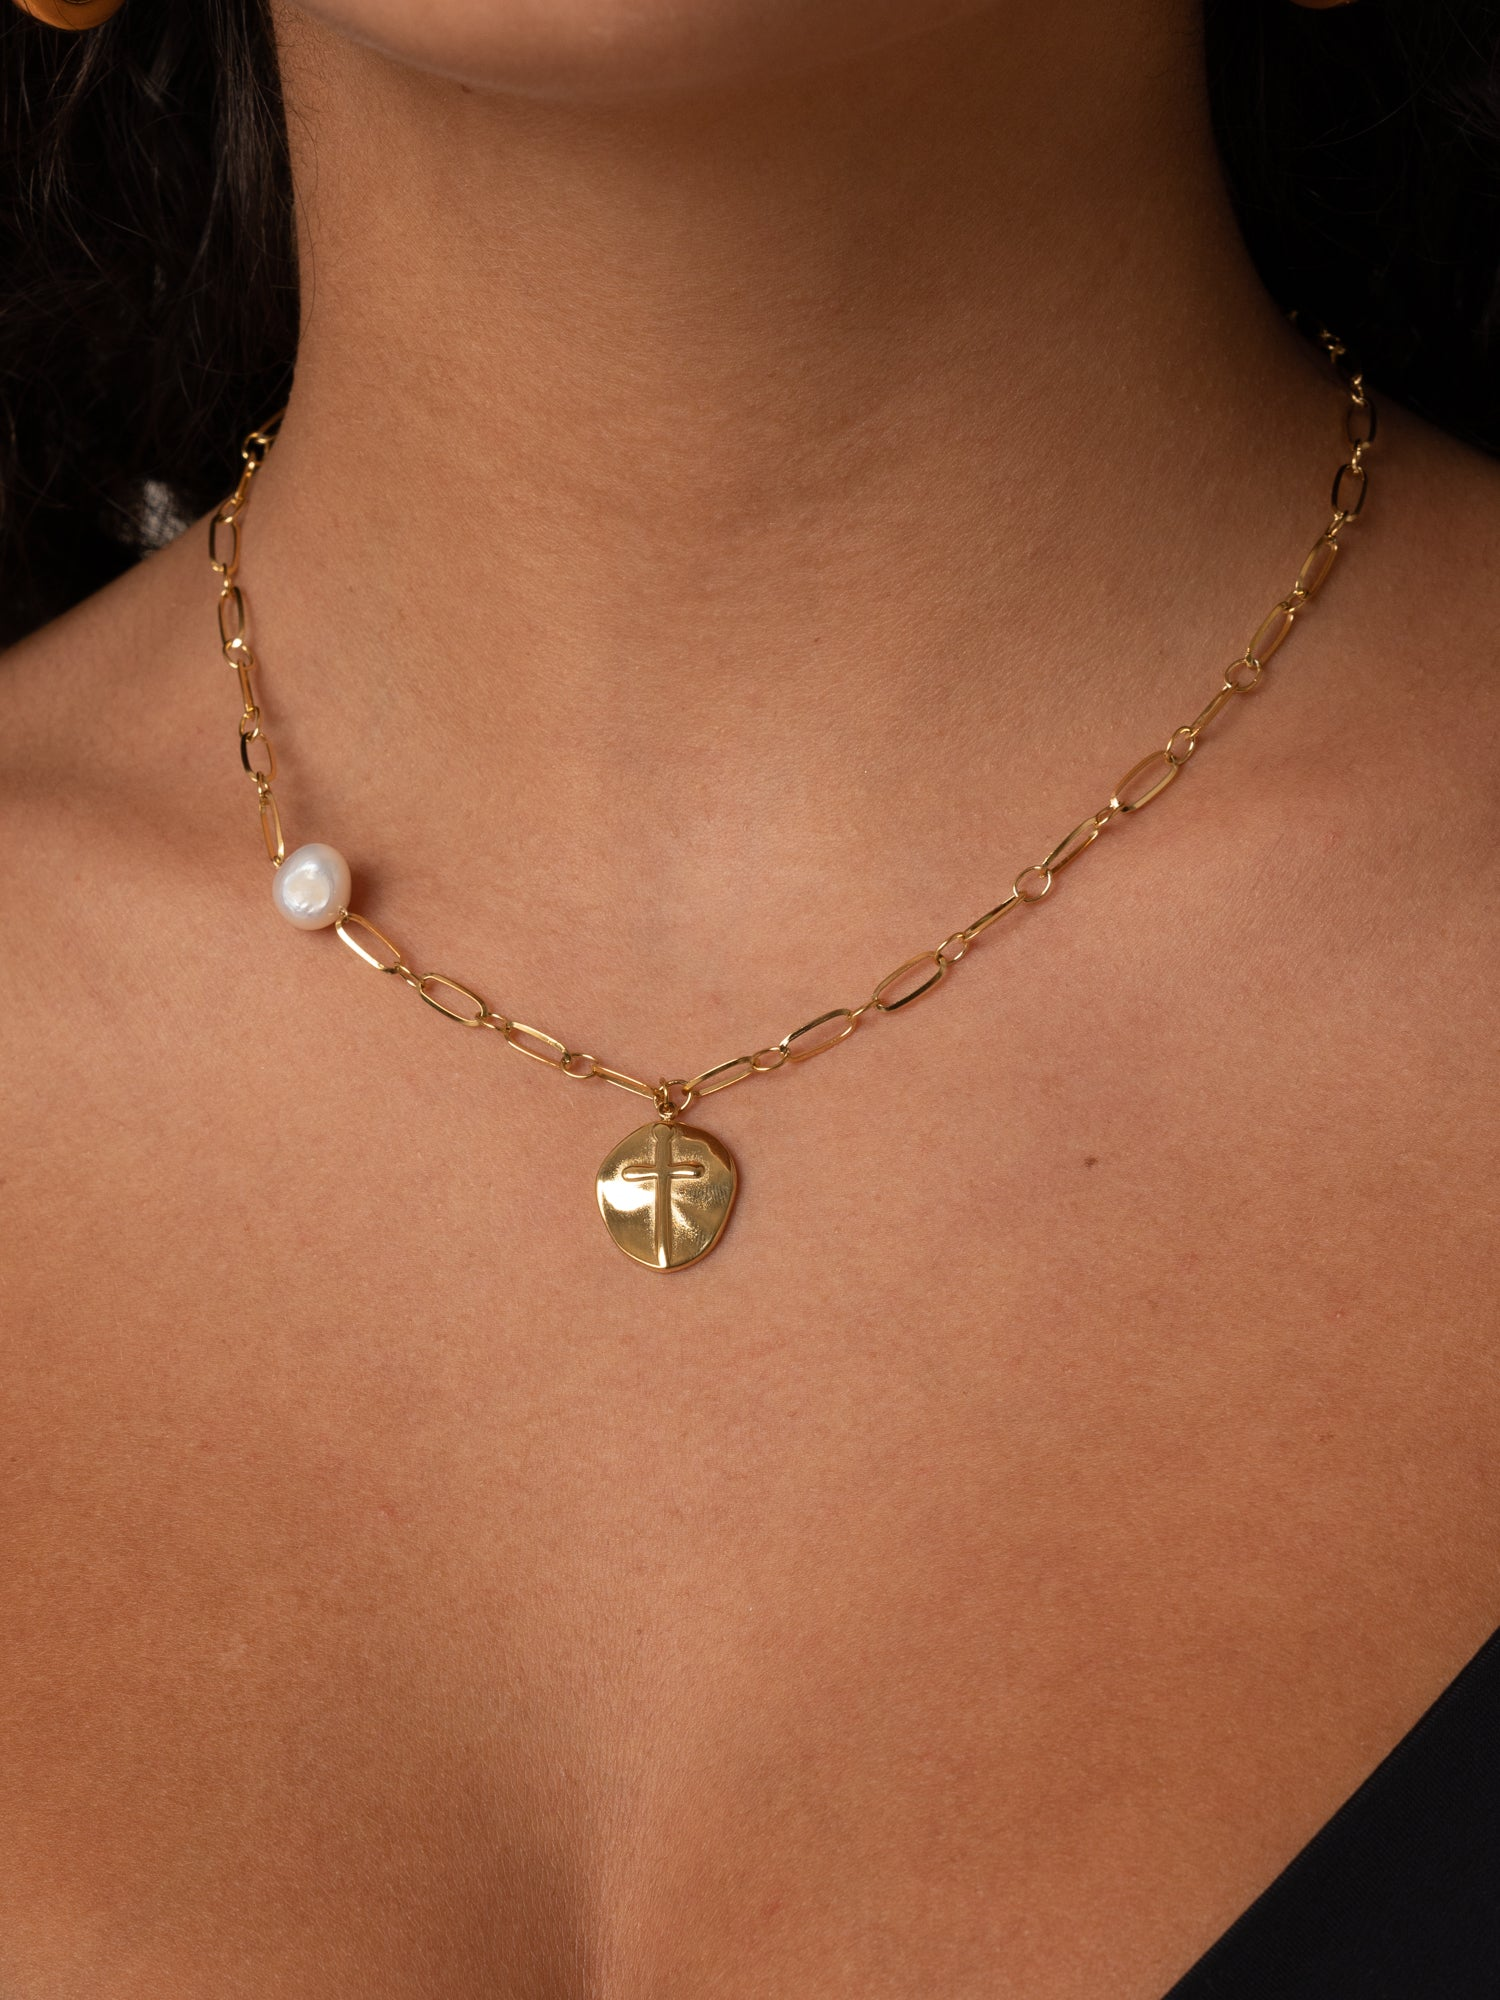 MINI COIN NECKLACE // stainless steal